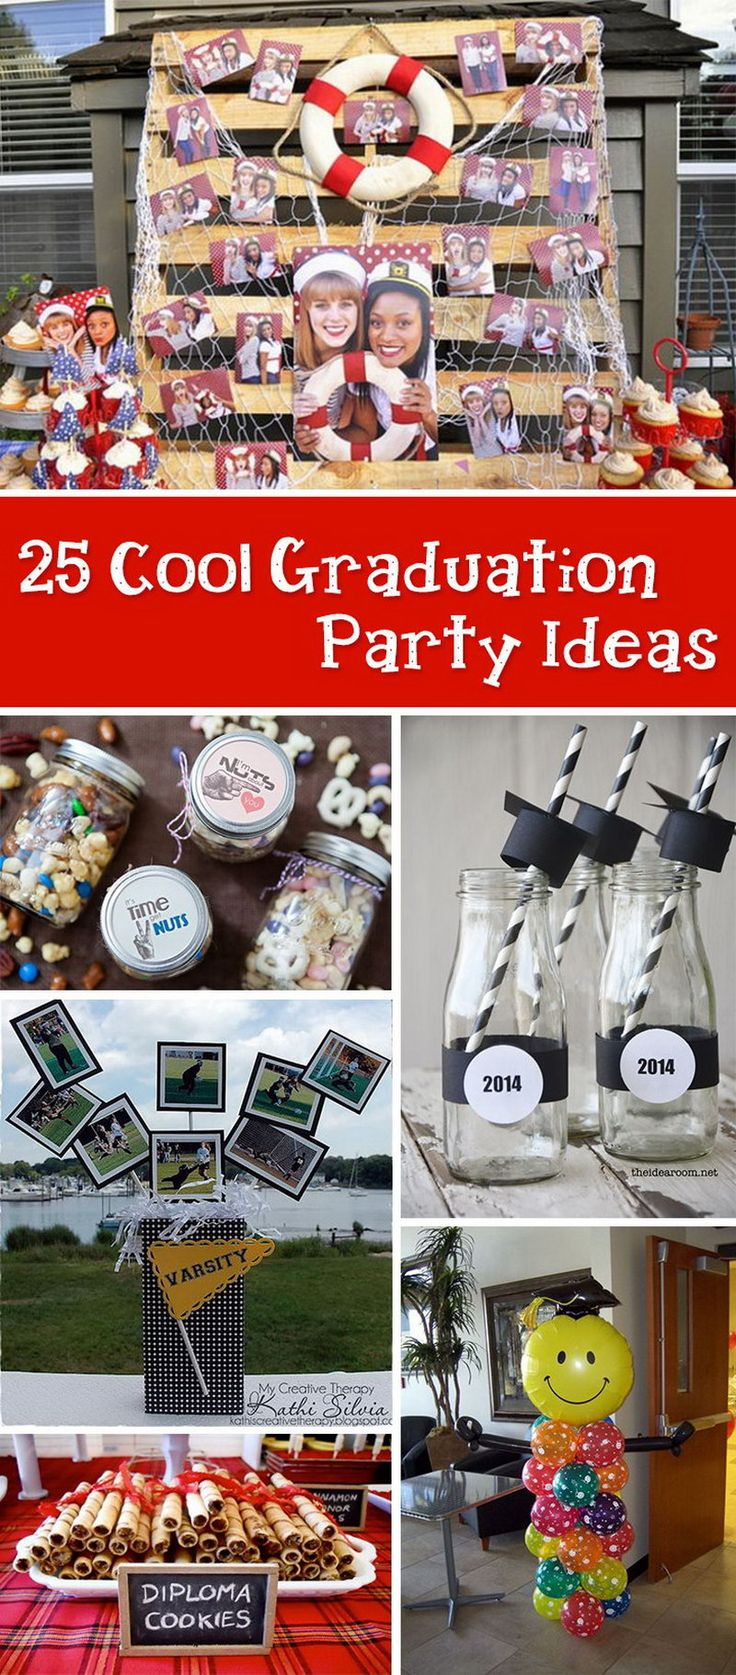 High school graduation party ideas  Etsy